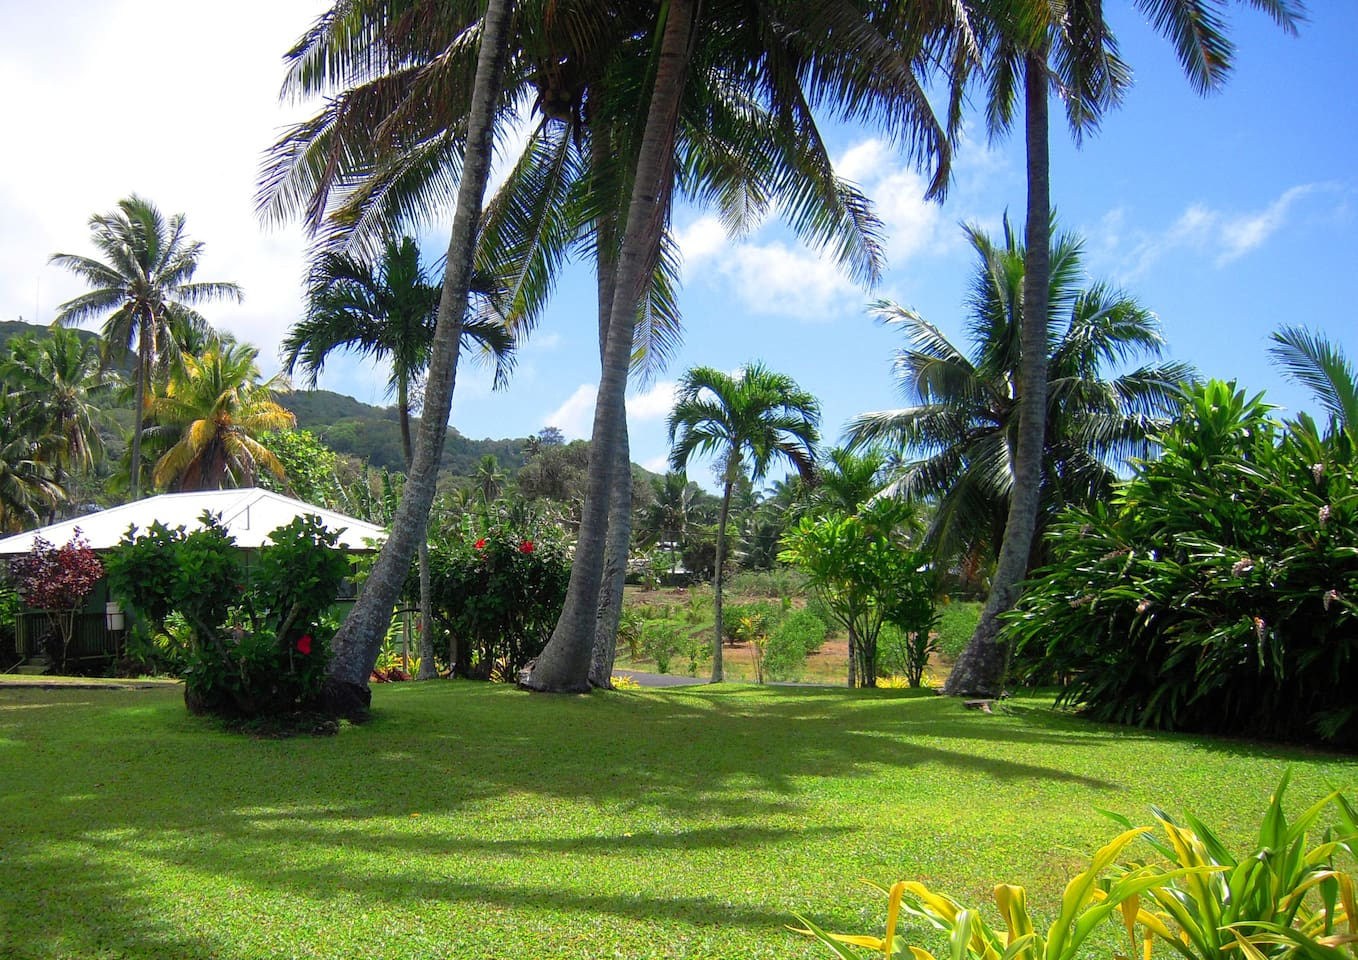 SPACIOUS GREEN TROPICAL GARDENS MAINTAINED BEAUTIFULLY FOR YOUR USE & ENJOYMENT